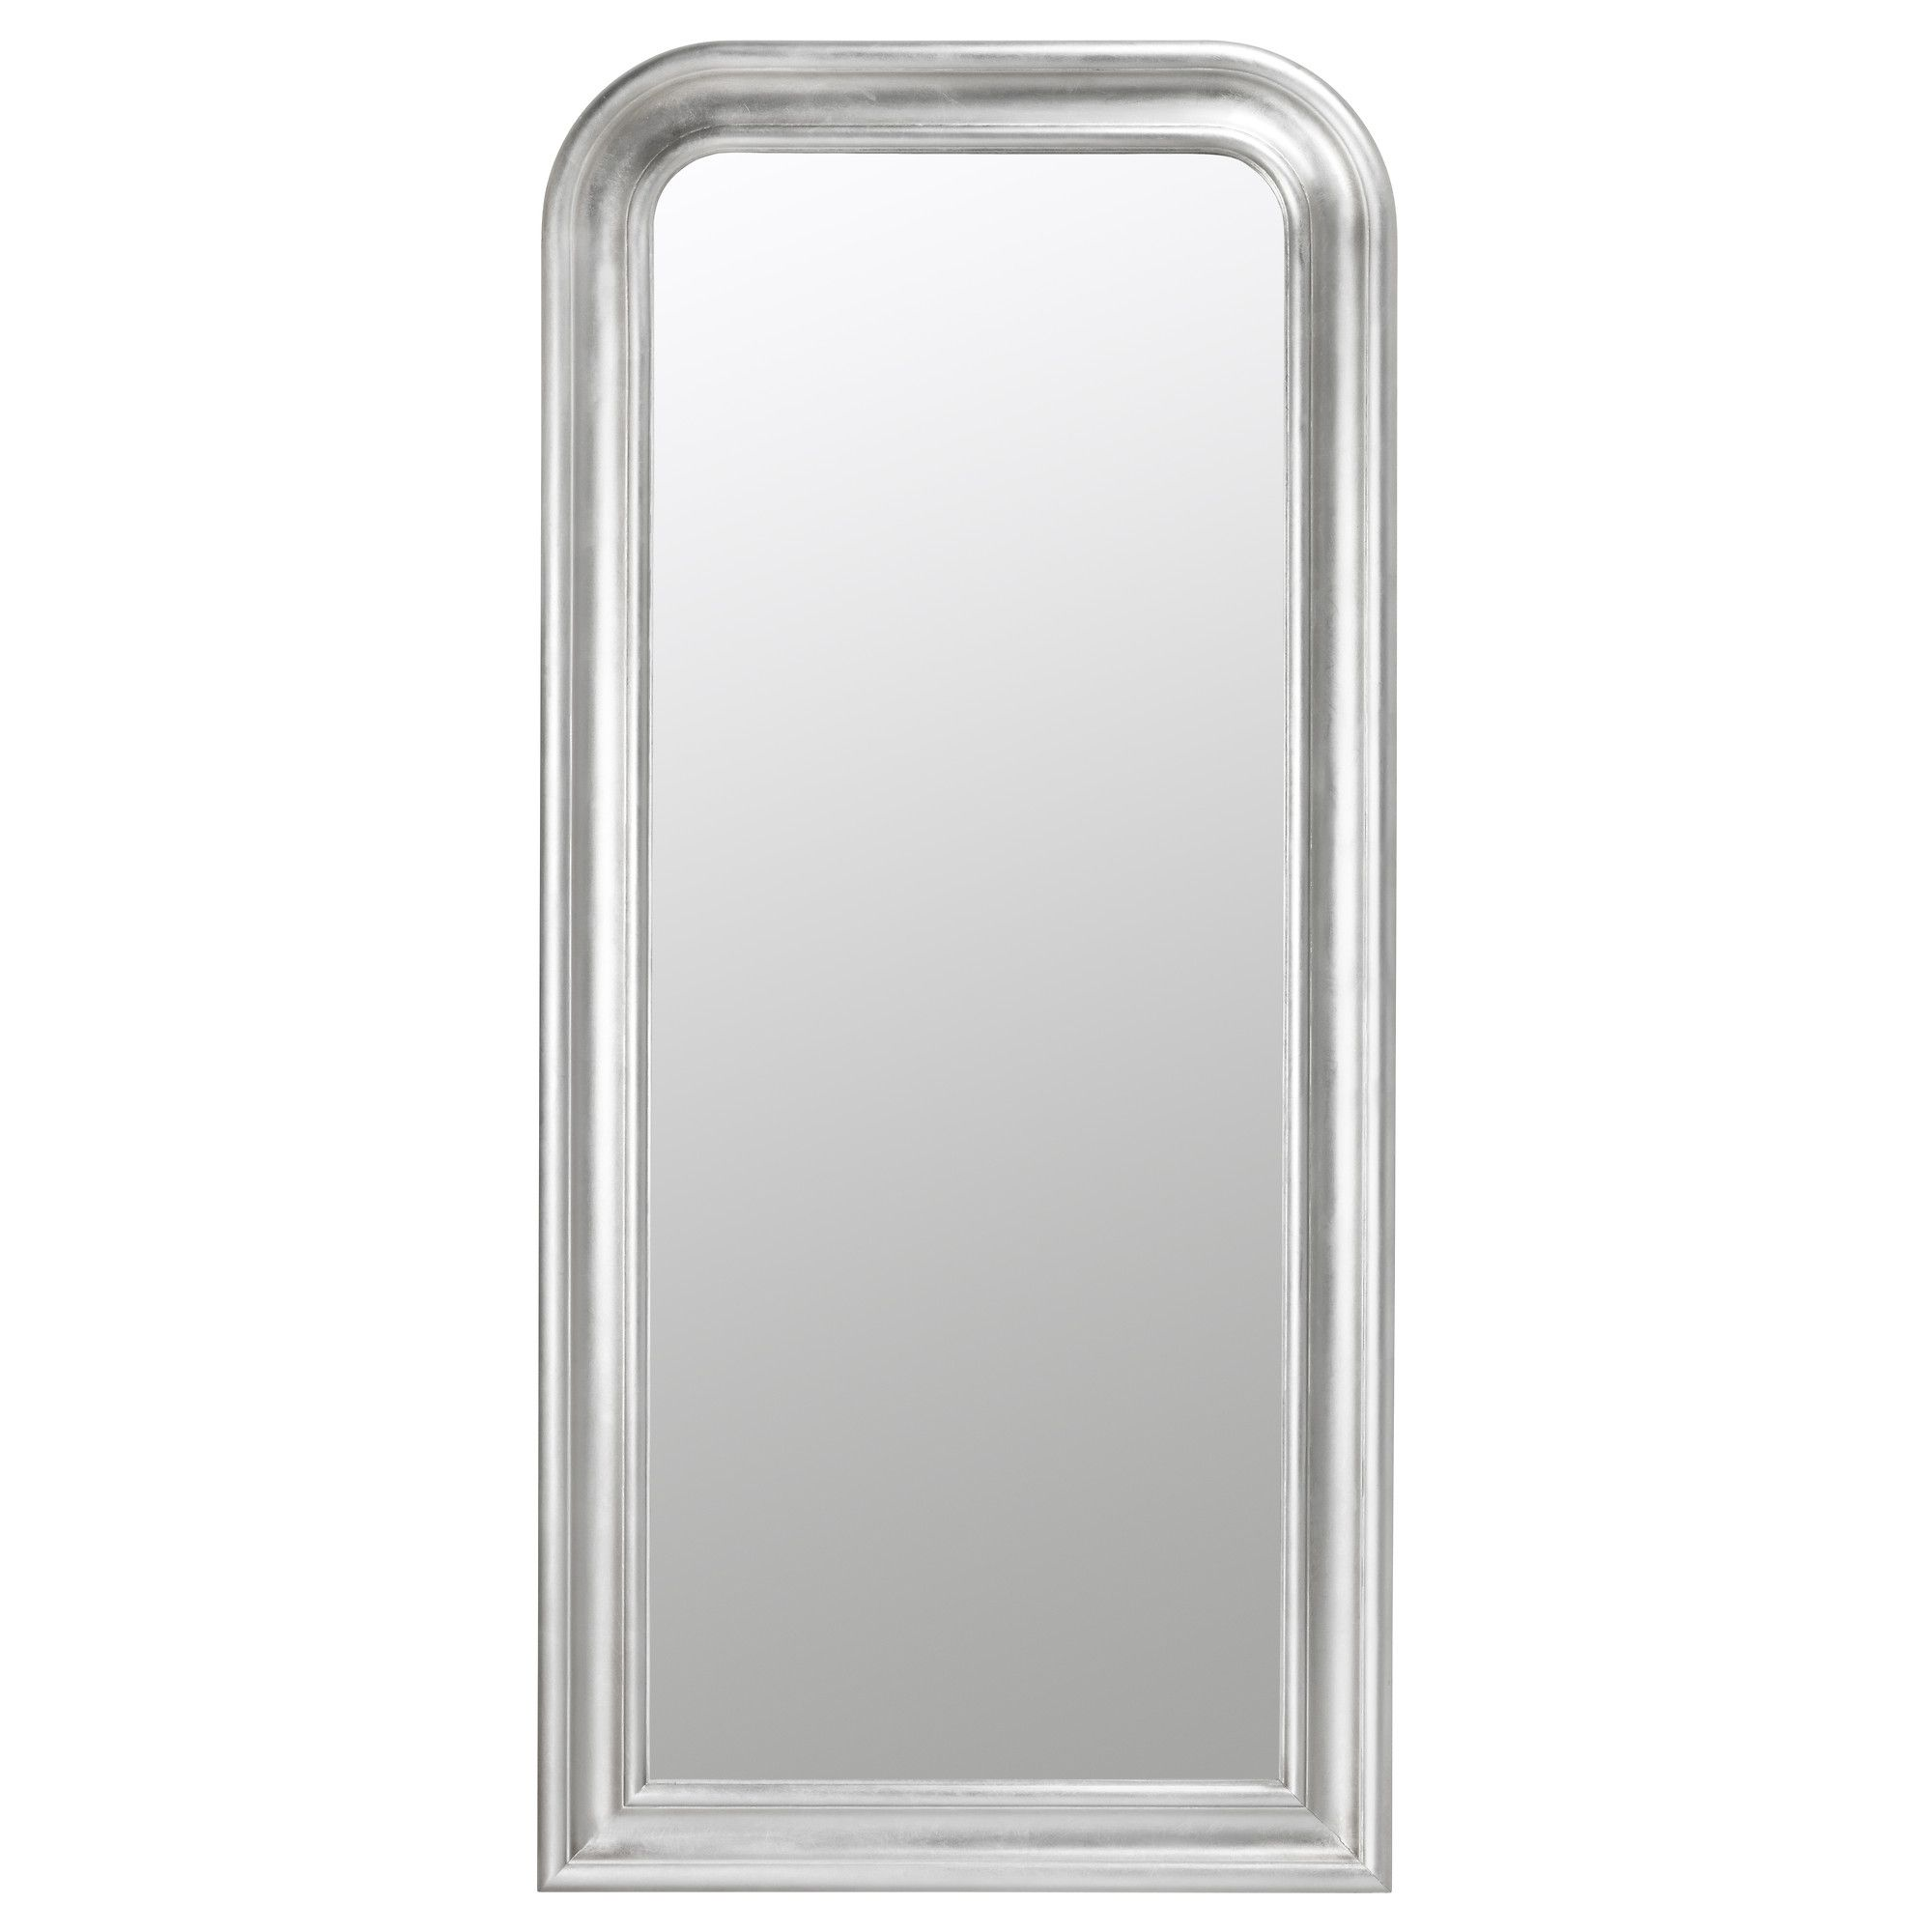 Songe miroir ikea home pinterest barbier le for Miroir ikea songe